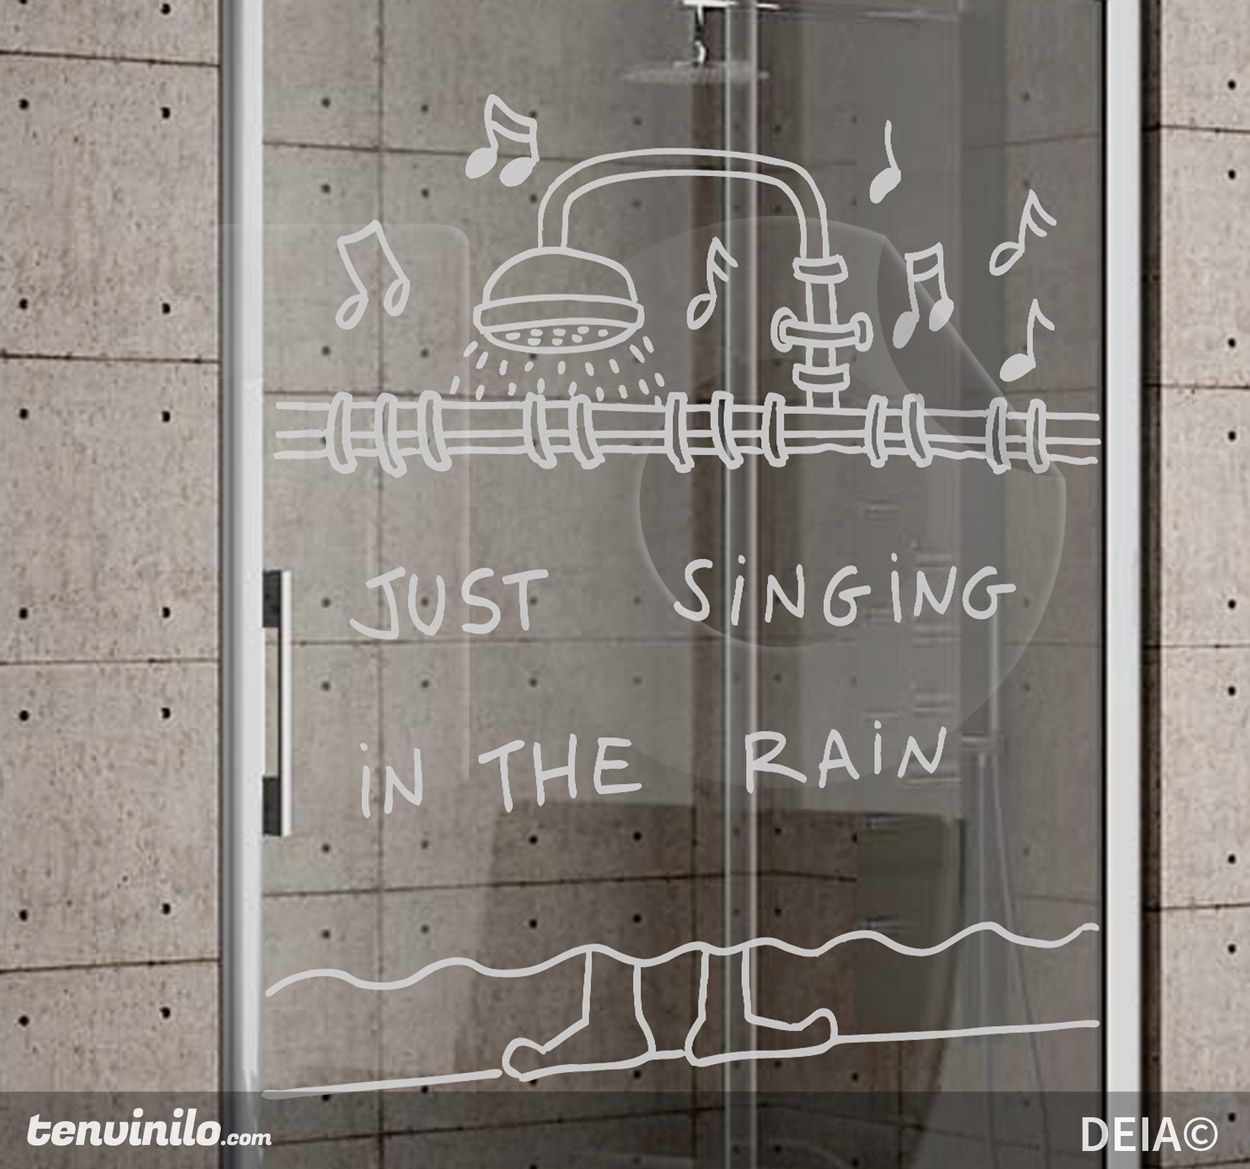 just singing in the rain | Paredes | Pinterest | Vinilos, Baños y Baño